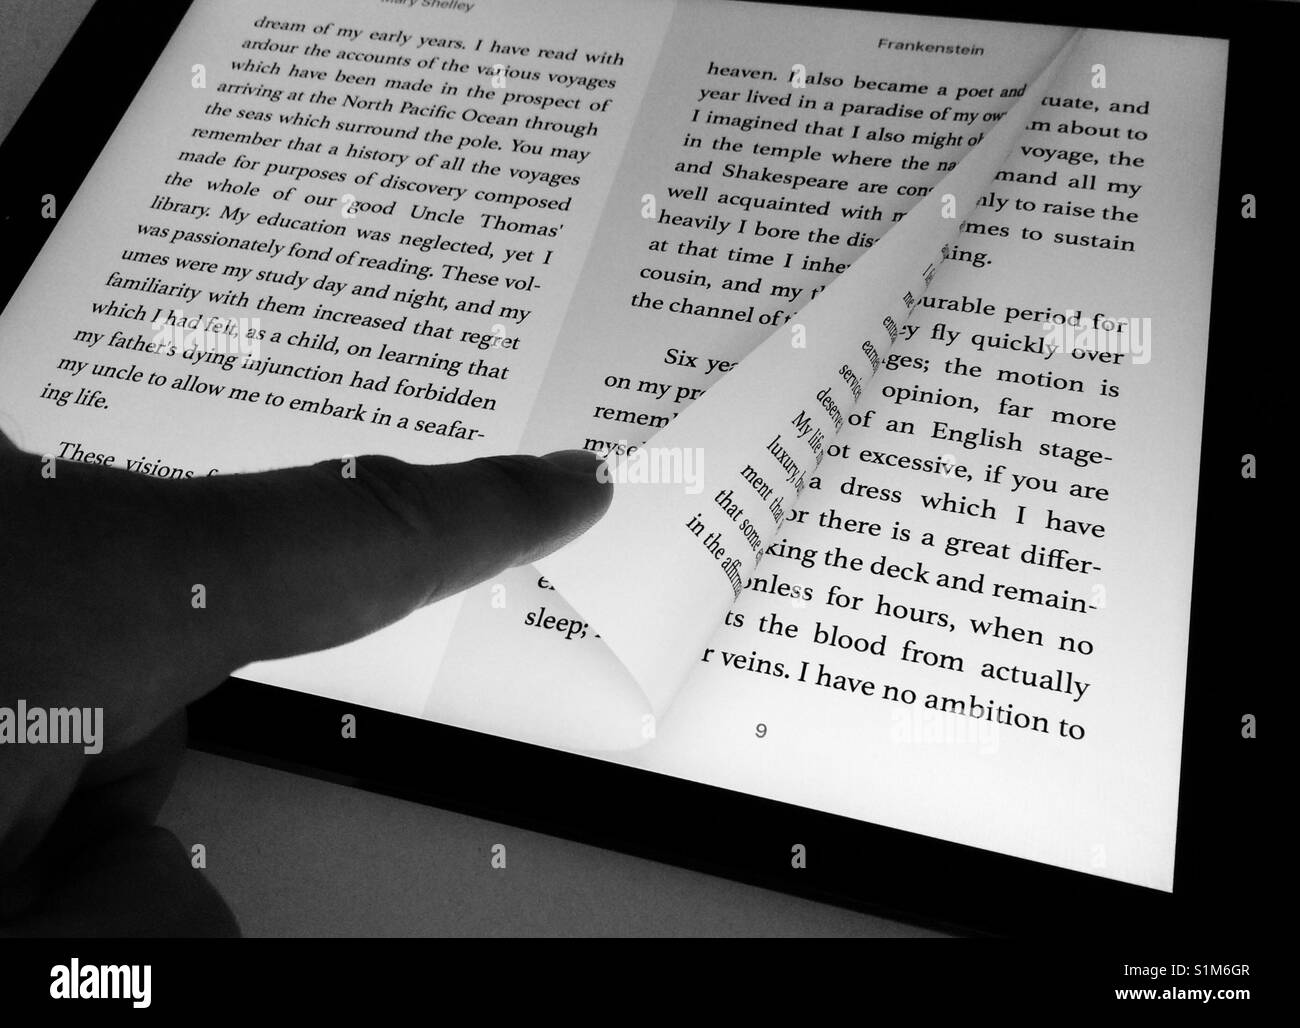 Turning a page in an ebook on iPad - Stock Image